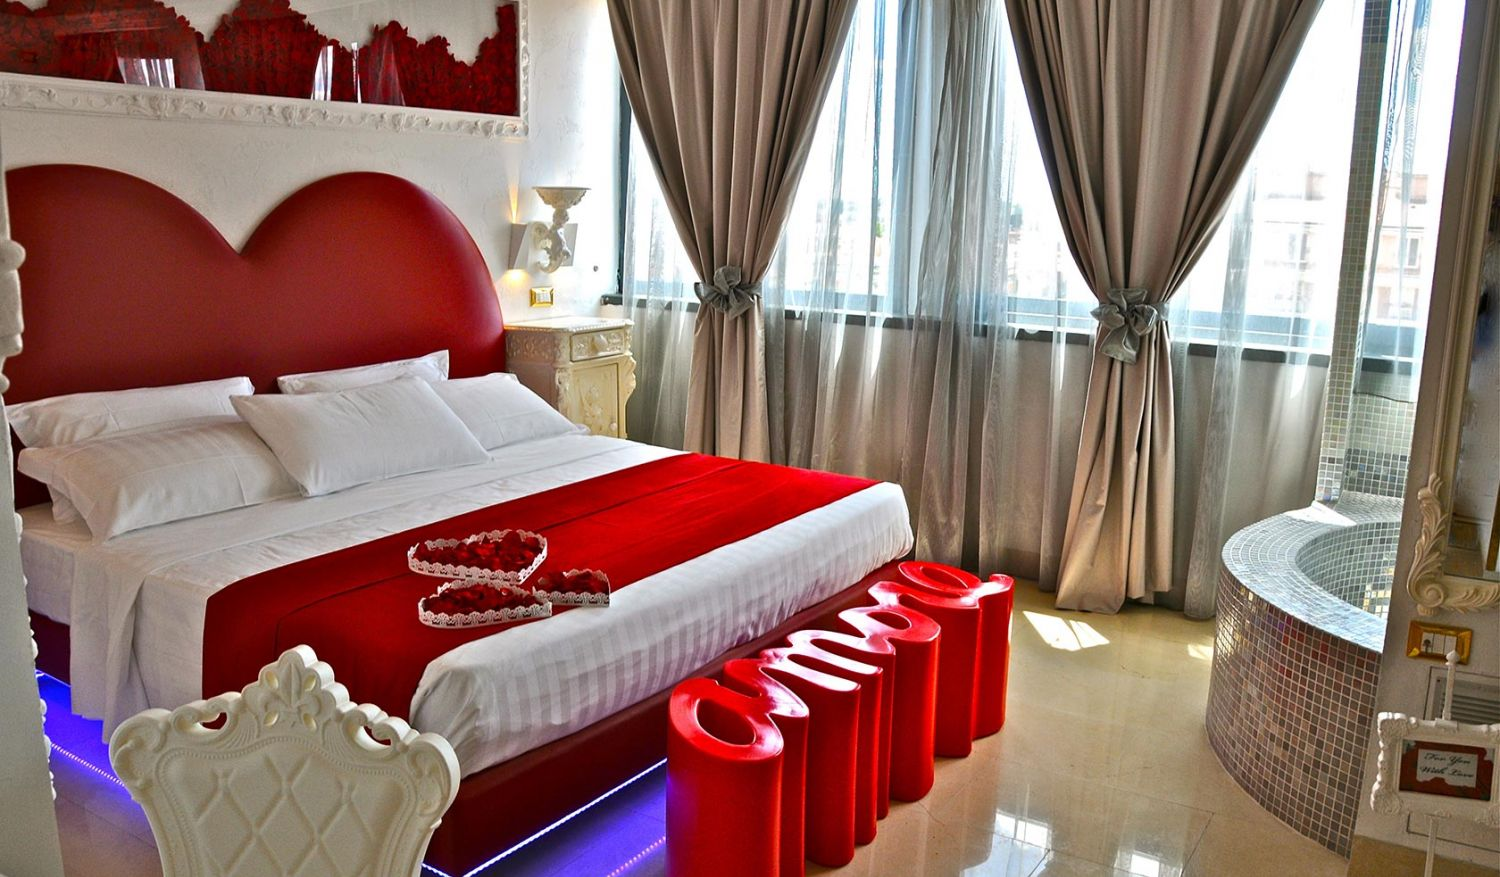 Elegant hotel with an ideal love room for a honeymoon in Rome